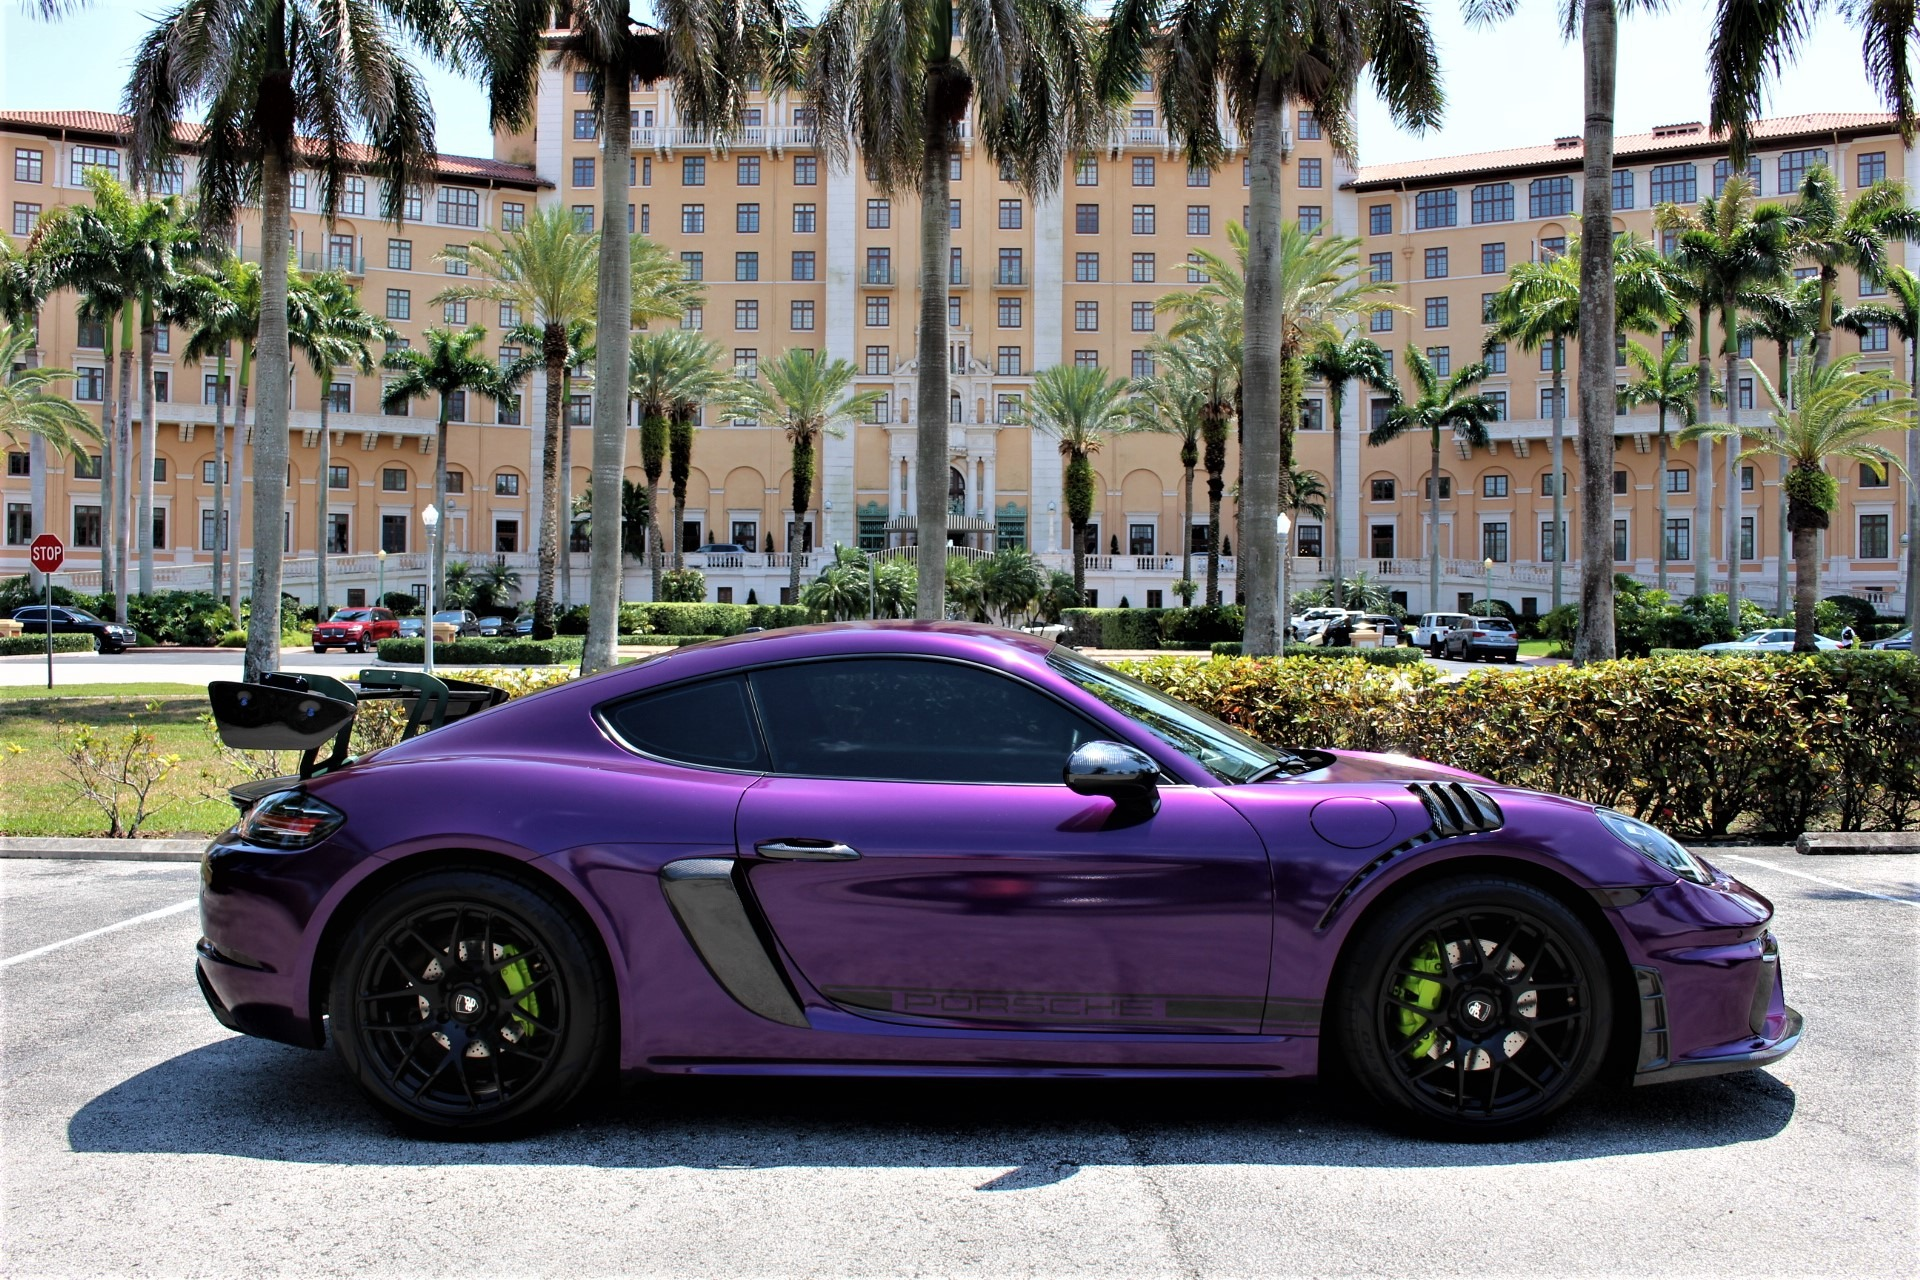 Used 2017 Porsche 718 Cayman S for sale Sold at The Gables Sports Cars in Miami FL 33146 1